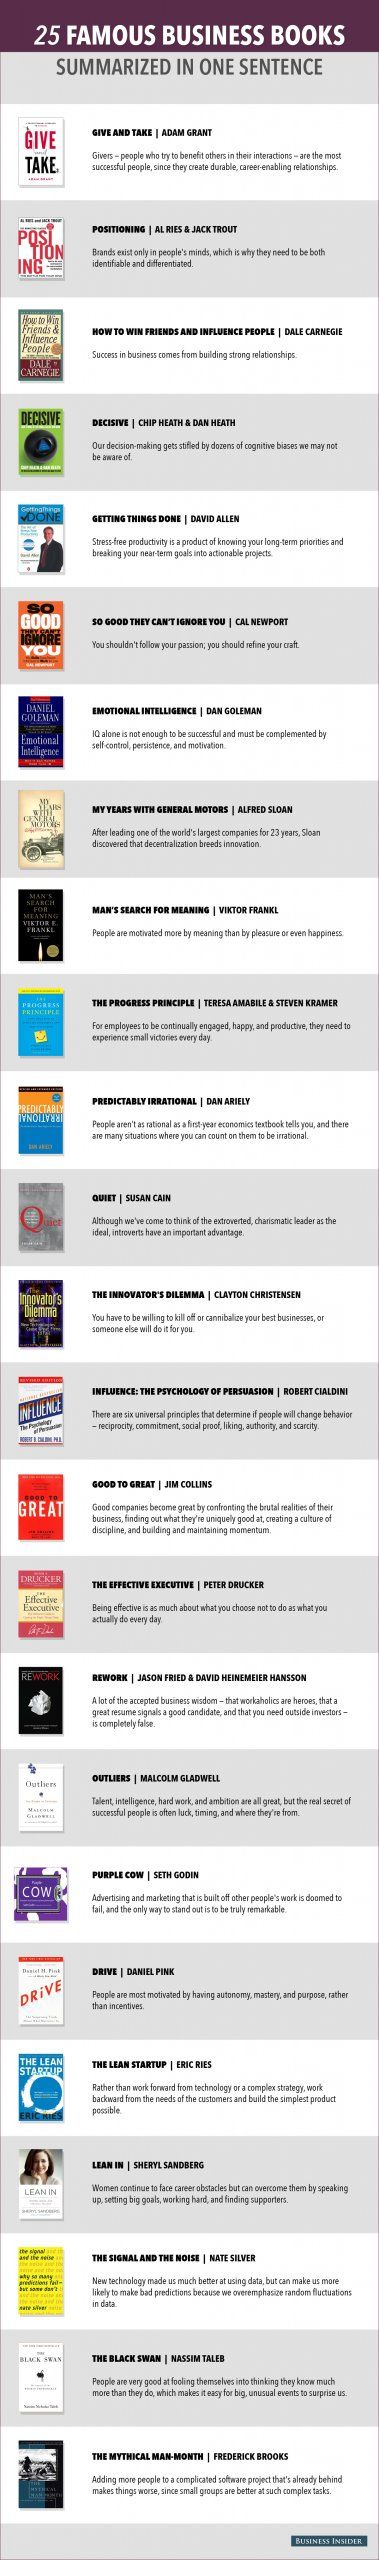 25 of the Best Business Books In One Sentence v.2_02